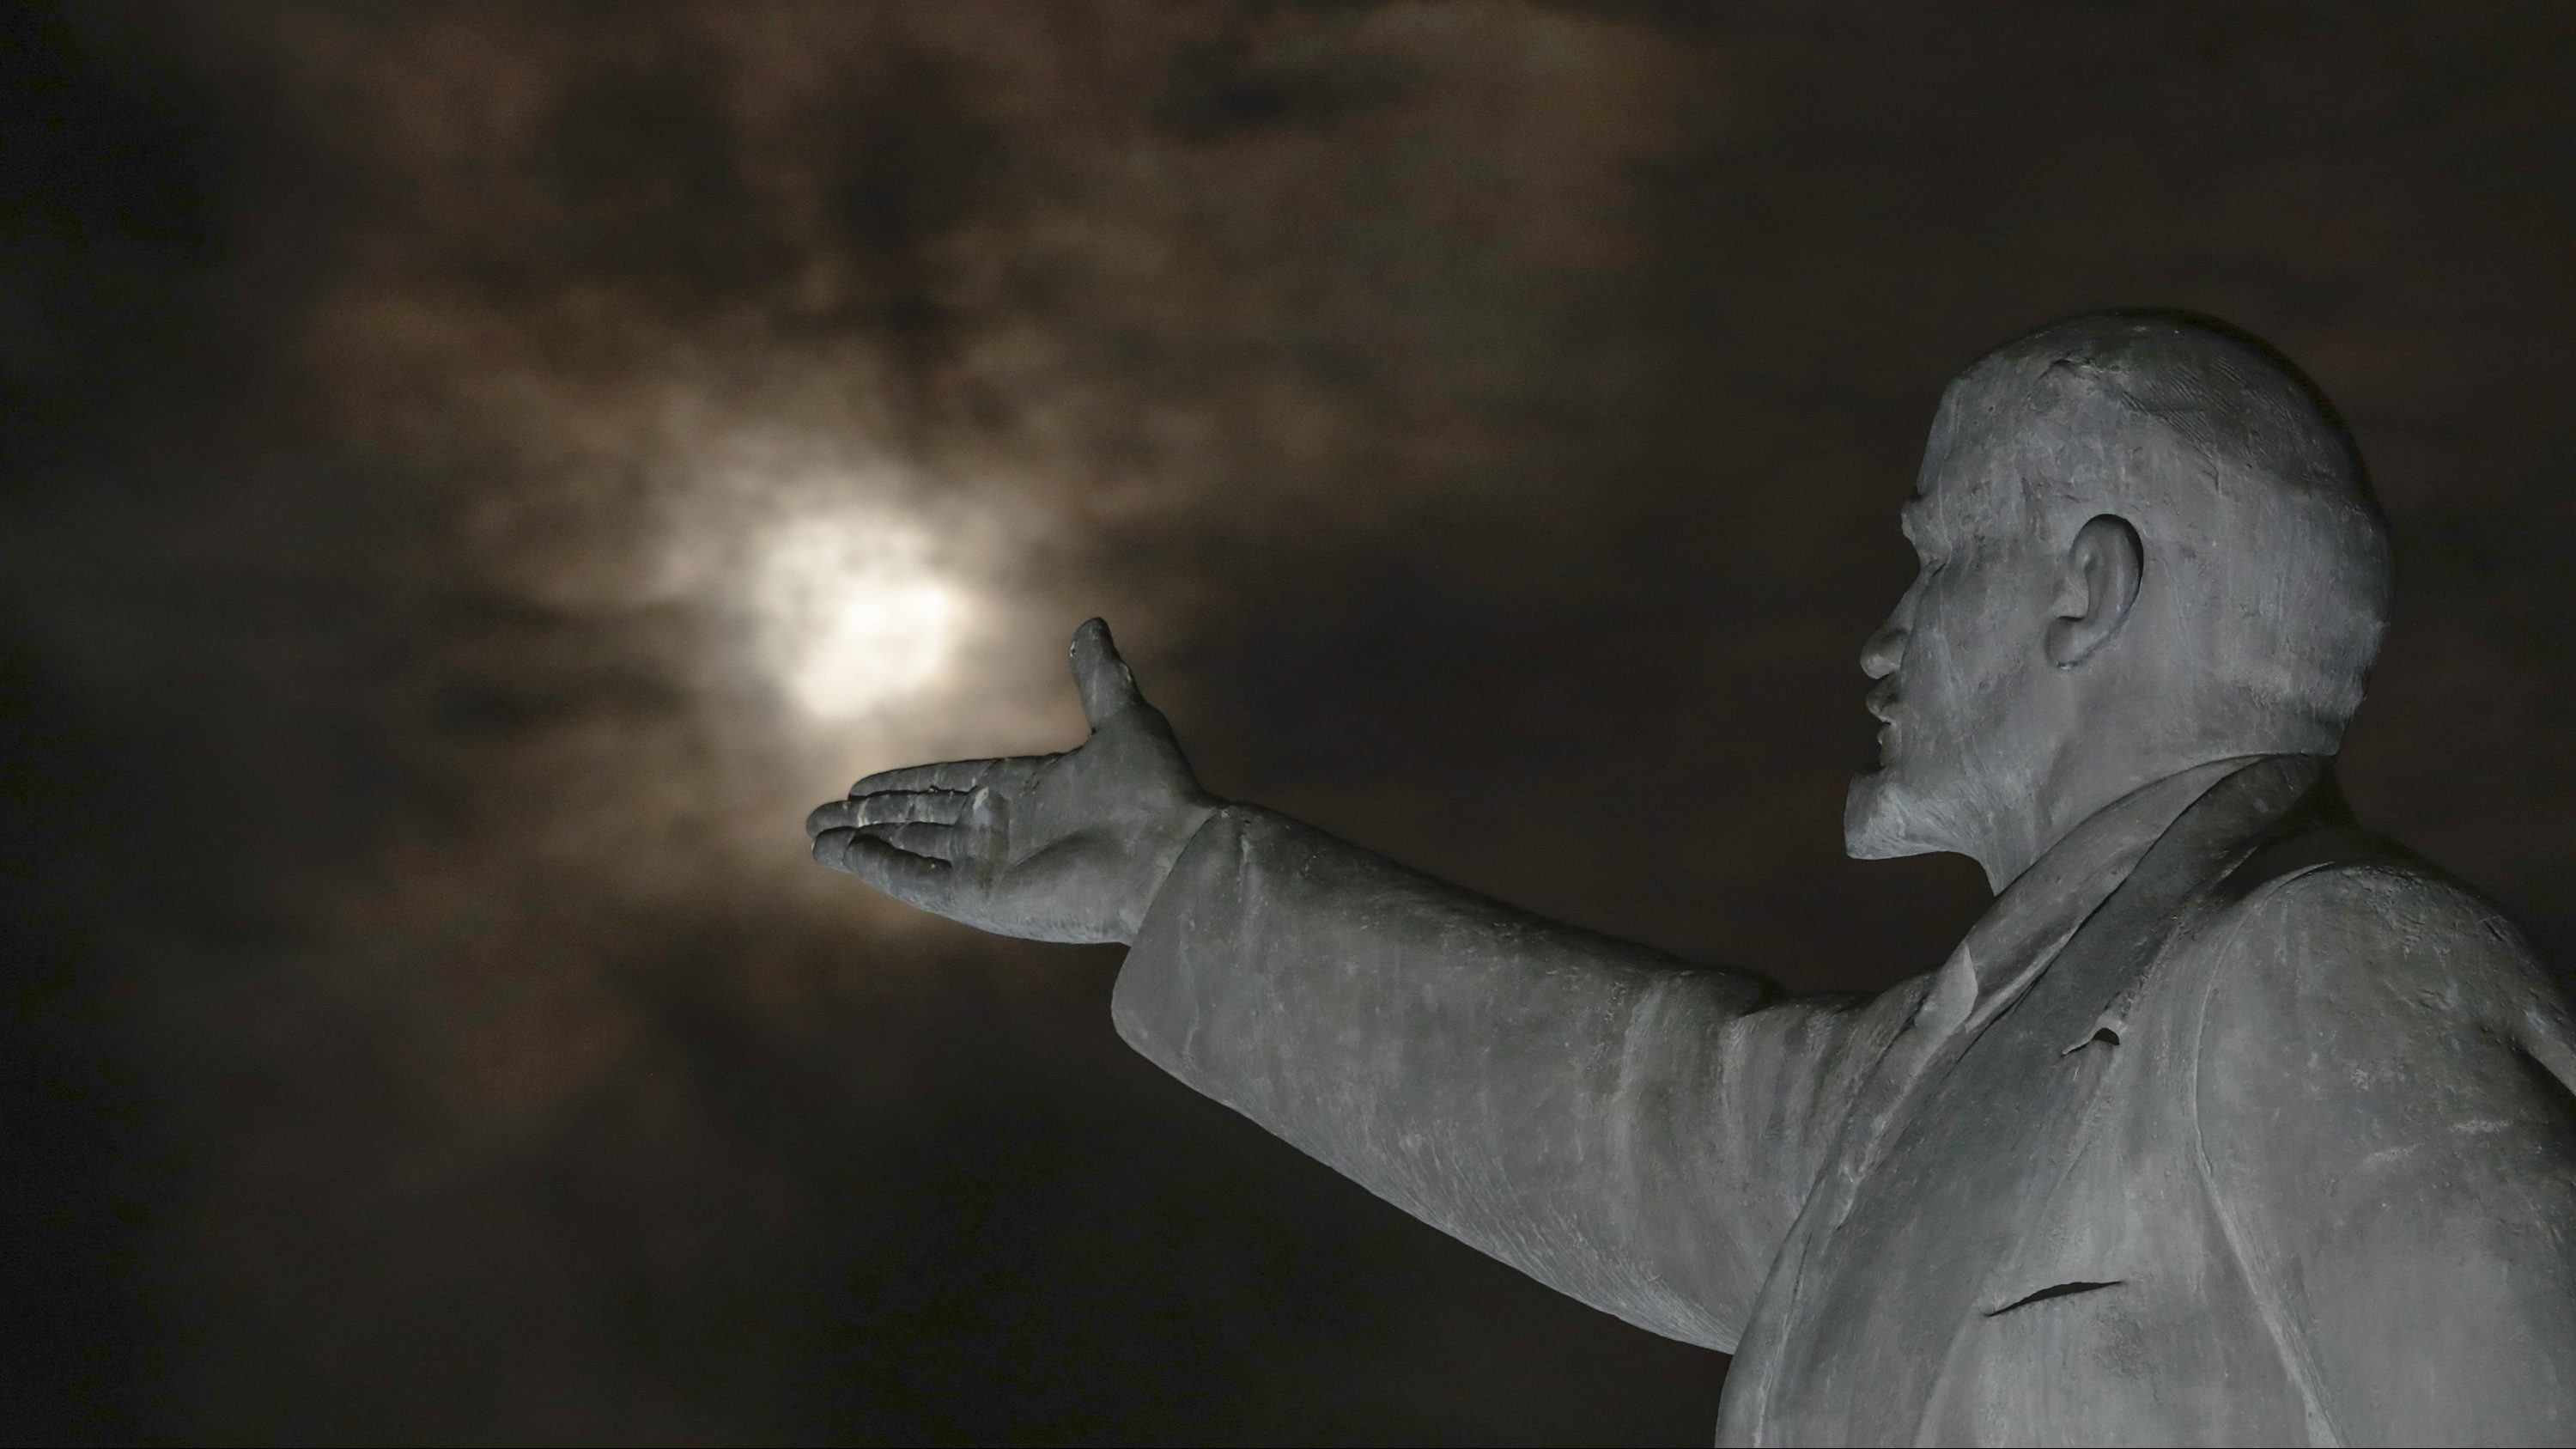 The super moon rises through the clouds over a statue of Soviet Union founder Vladimir Lenin at the Russian leased Baikonur cosmodrome, Kazakhstan, Monday, Nov. 14, 2016.